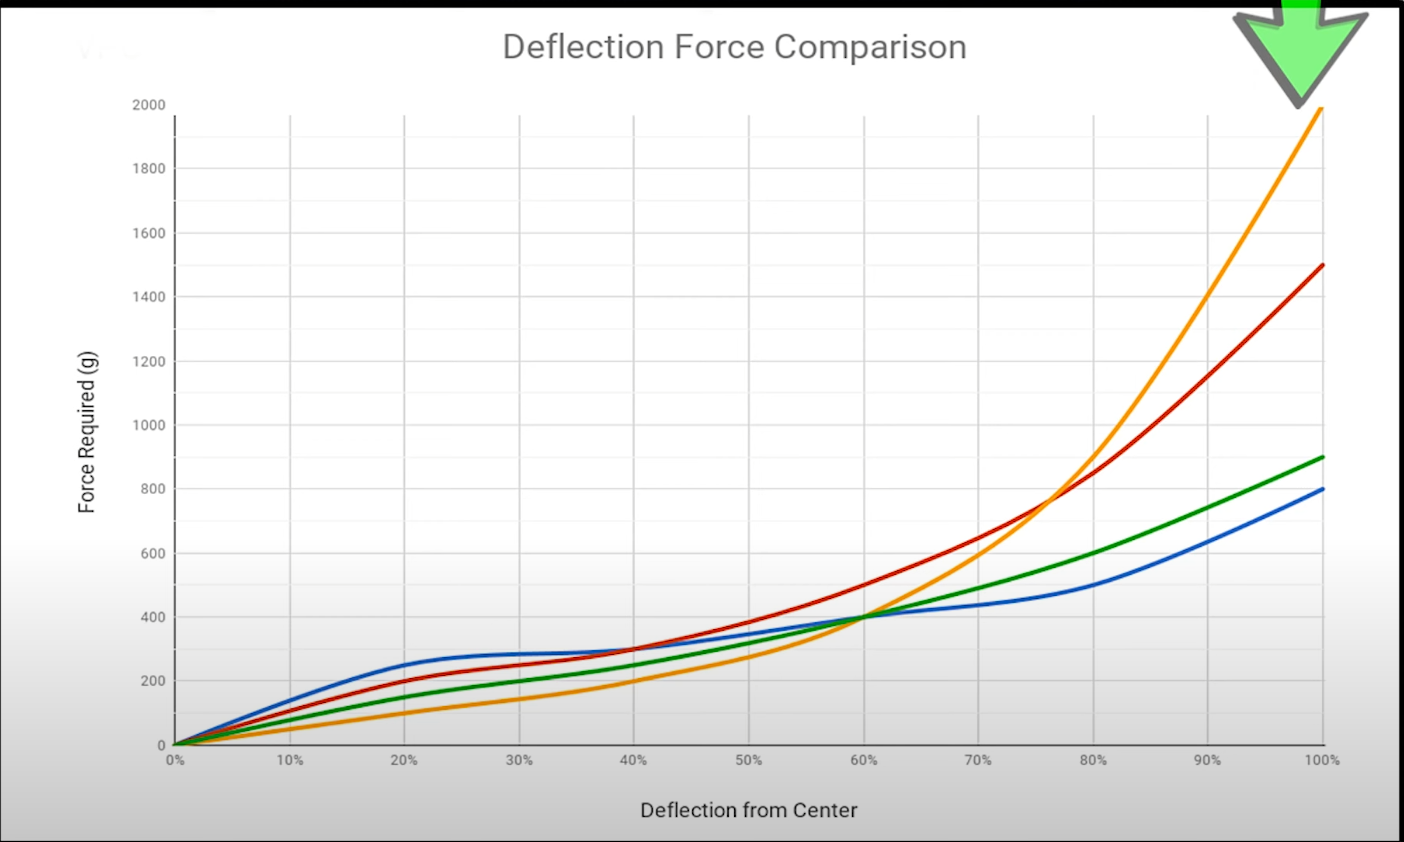 Deflection comparison between cam profiles and center options